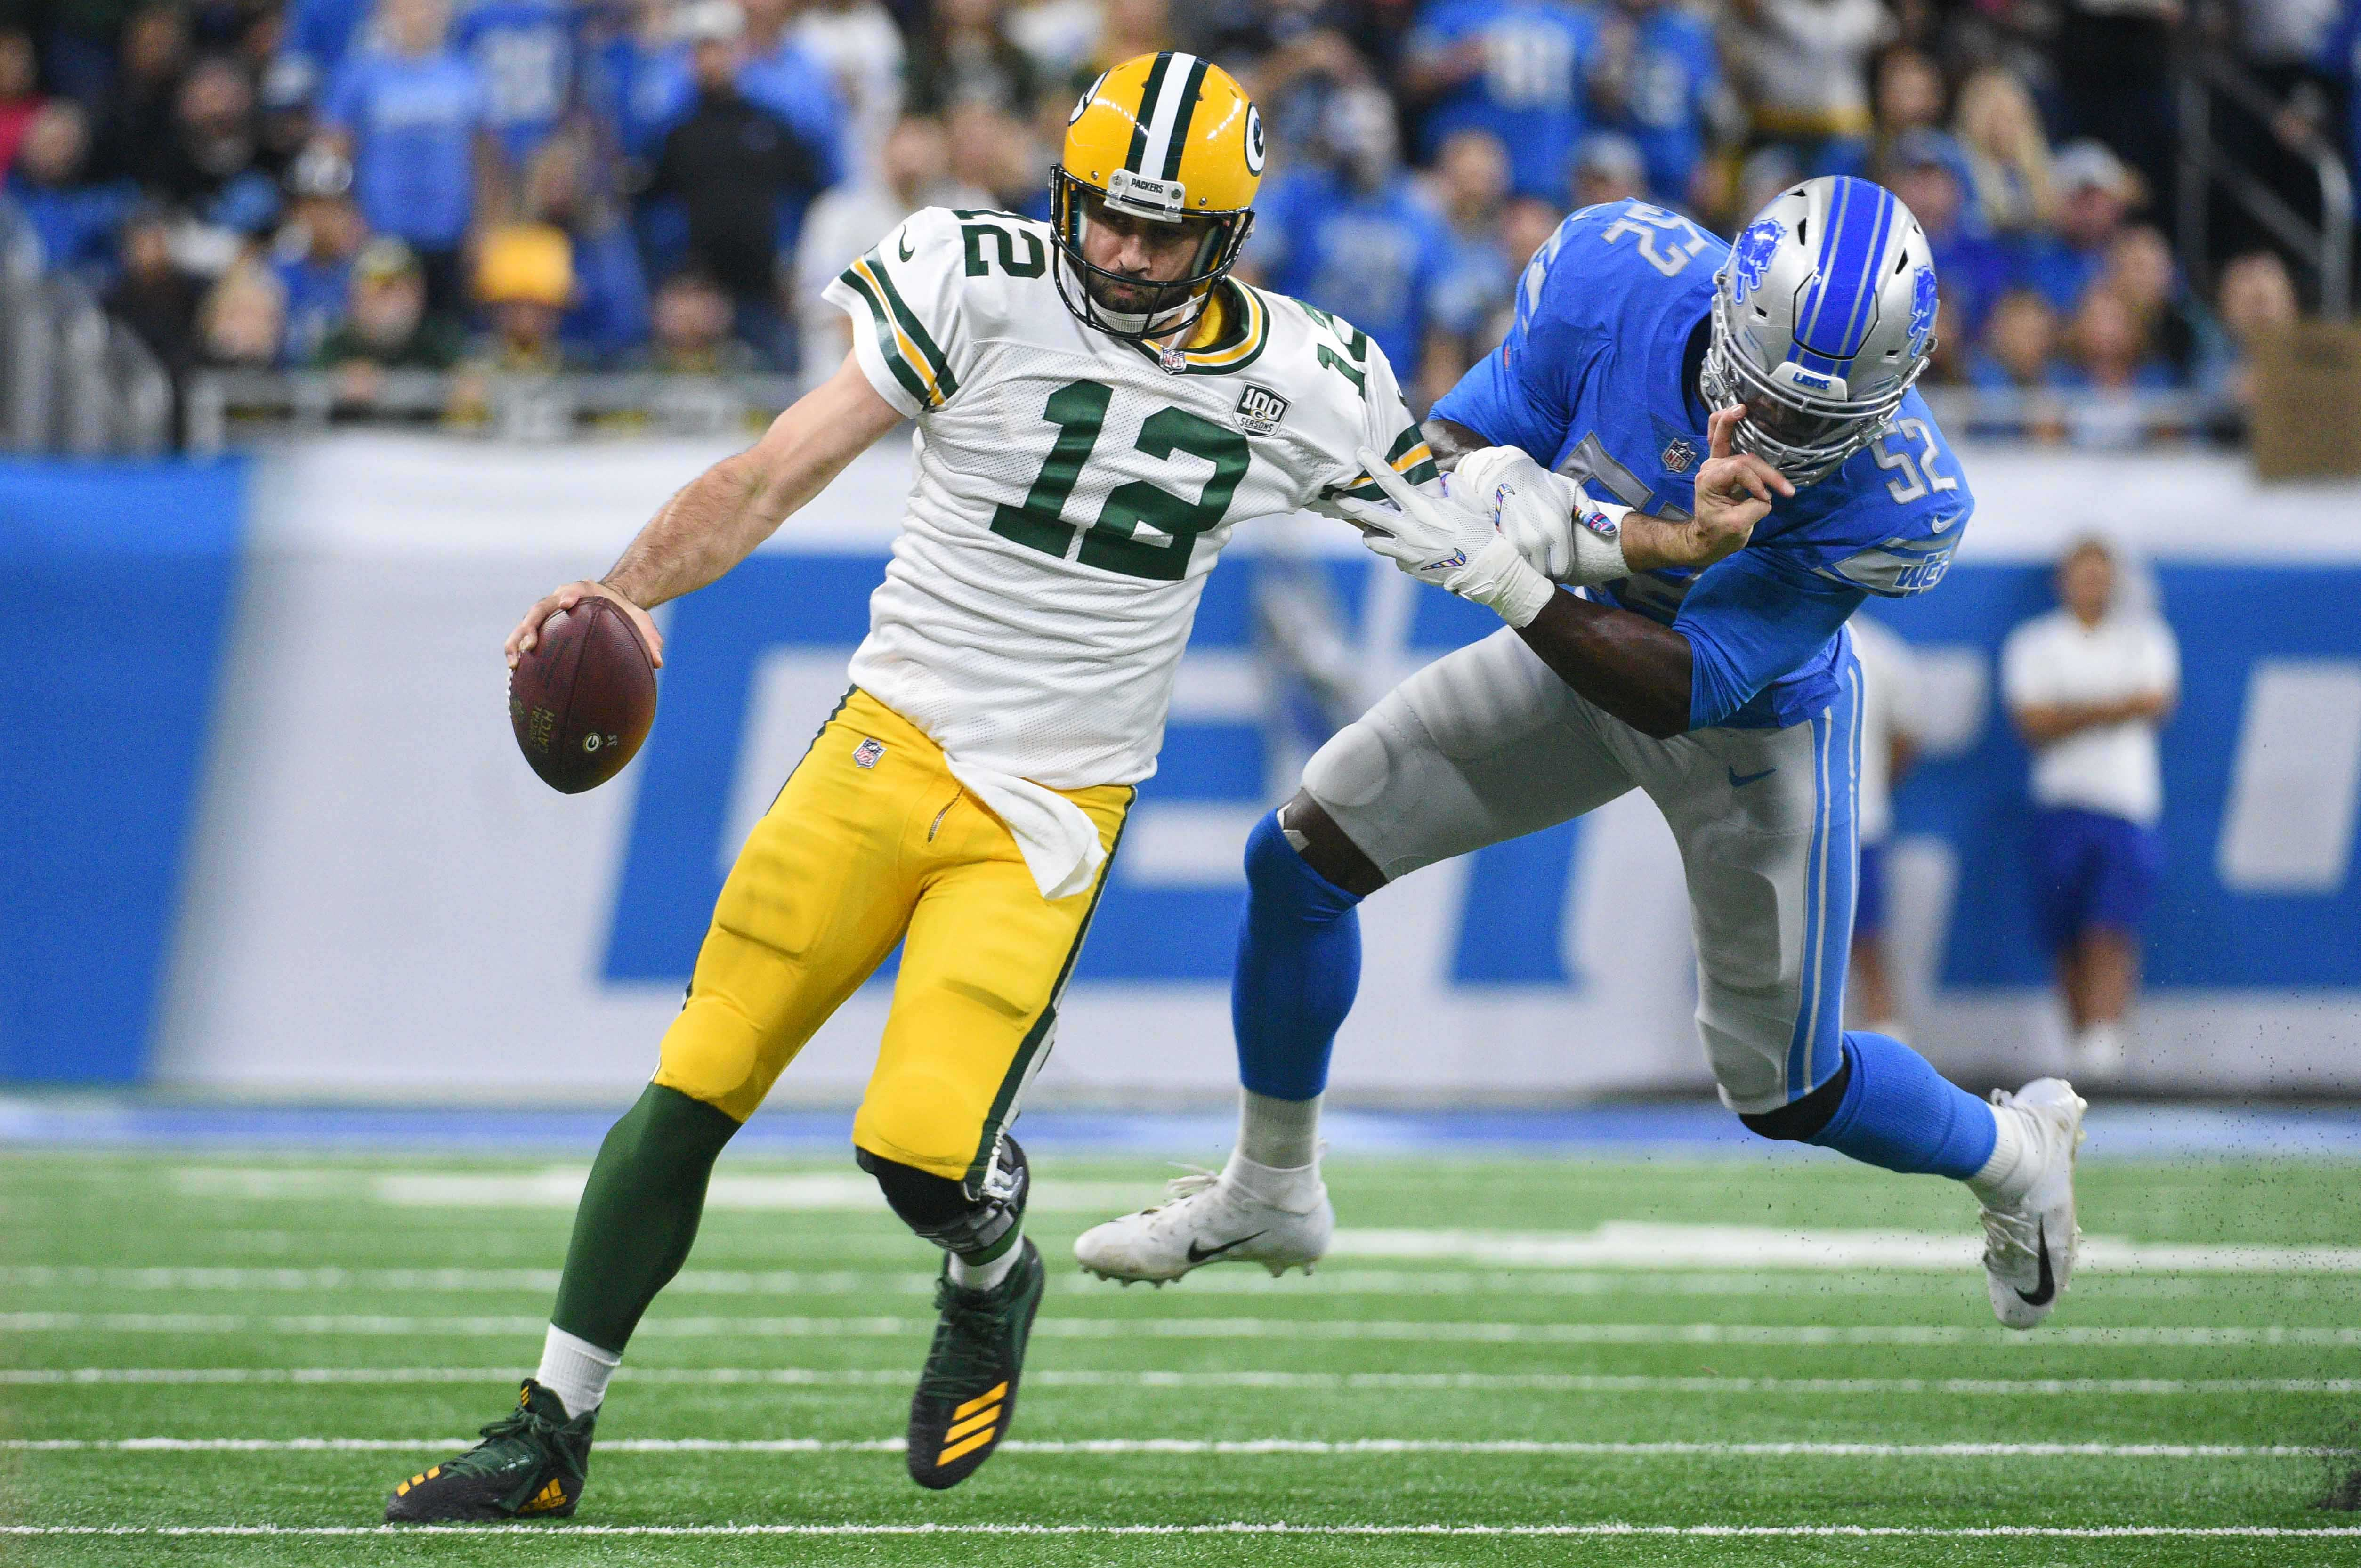 NFL: Green Bay Packers at Detroit Lions